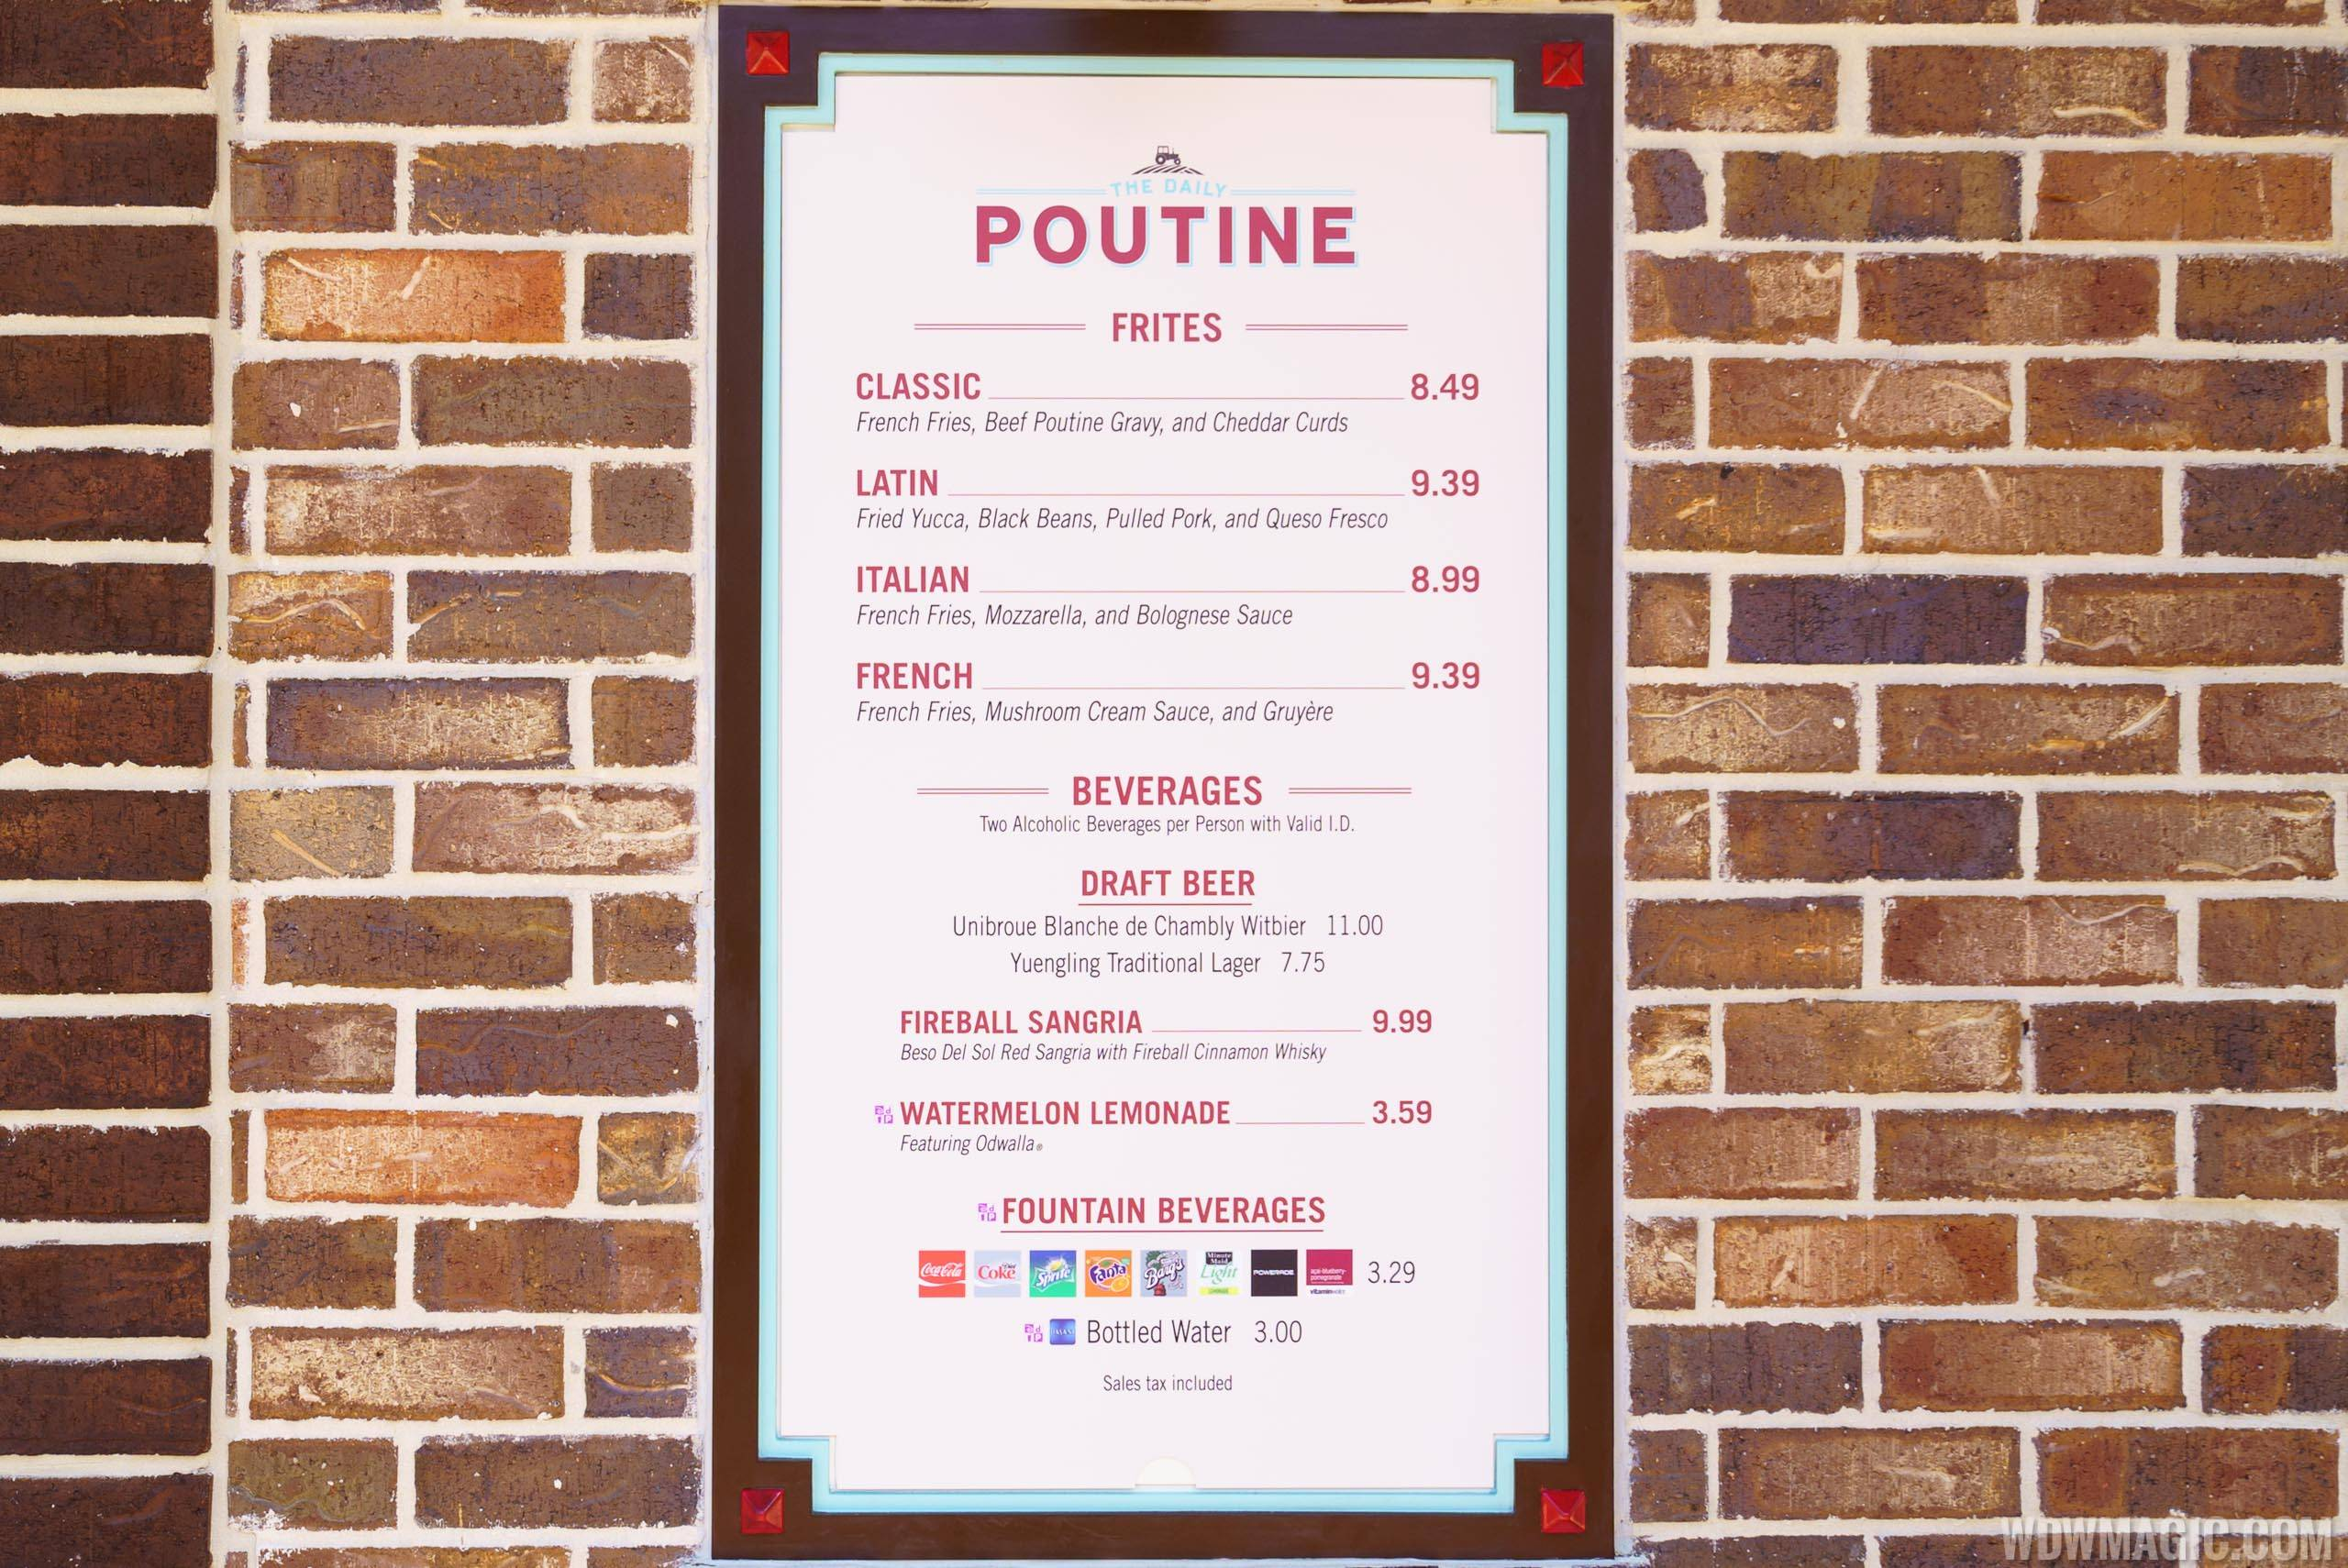 The Daily Poutine overview